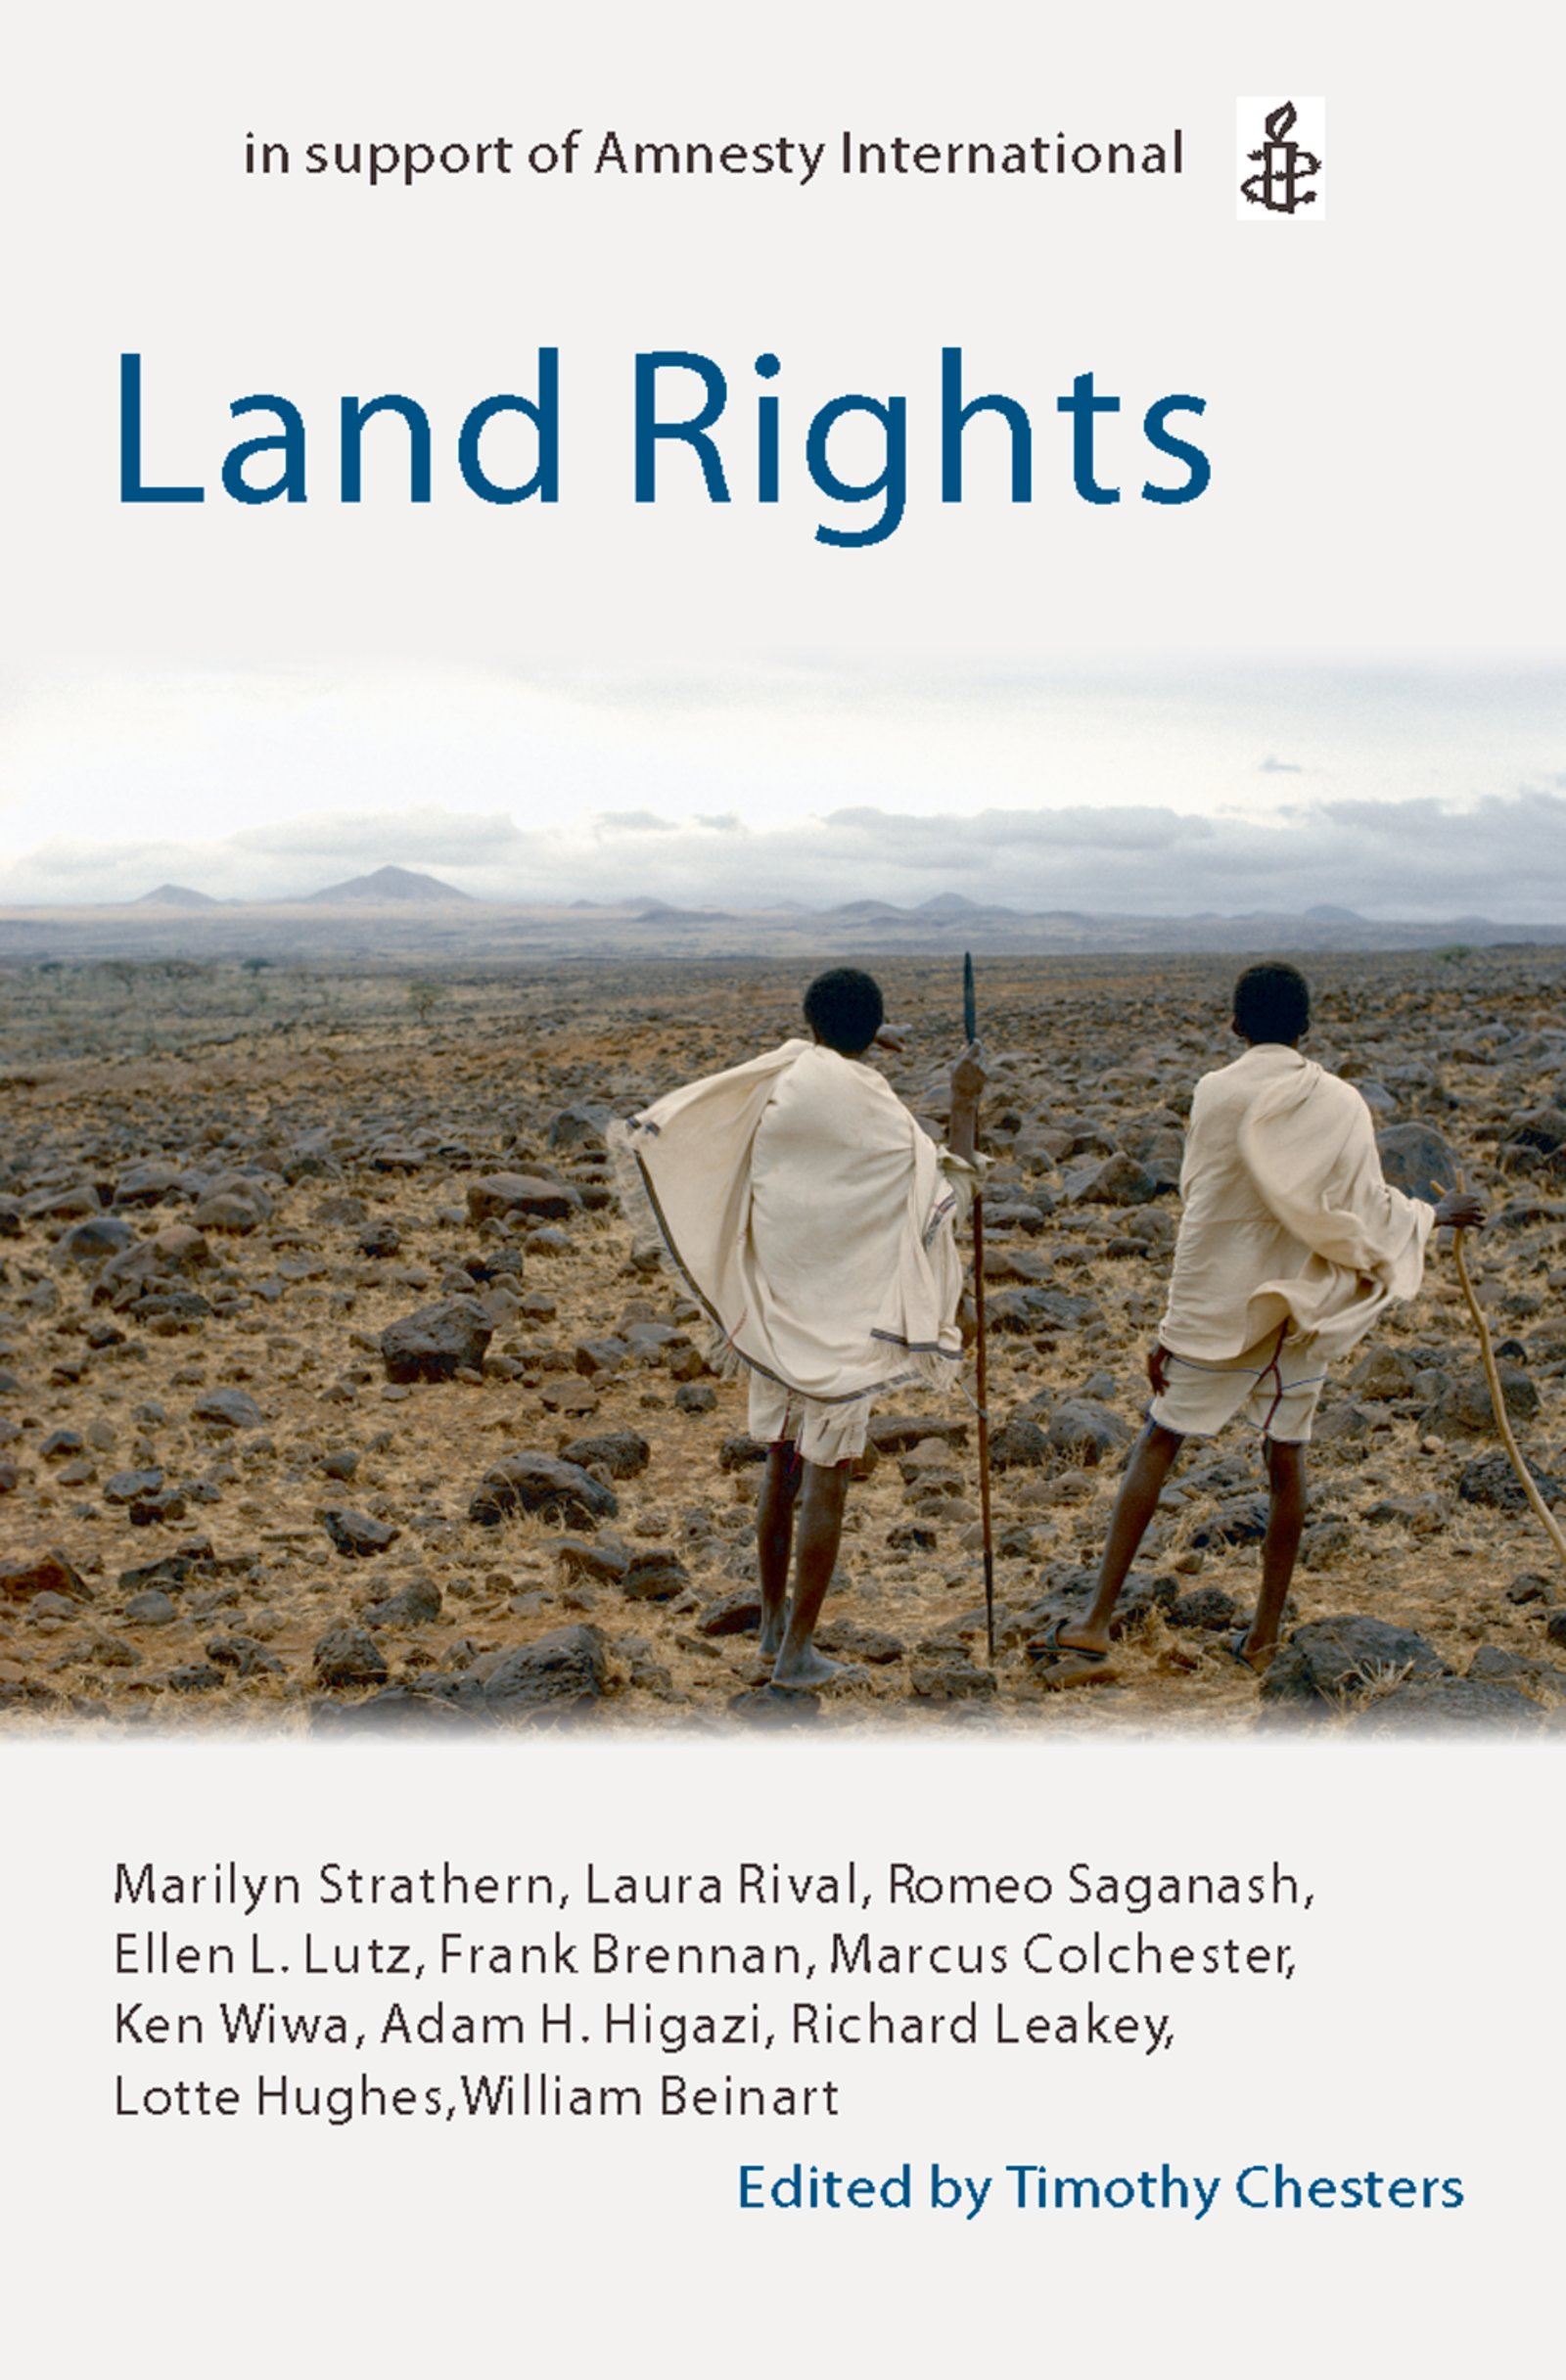 Download Ebook Land Rights by Timothy Chesters Pdf